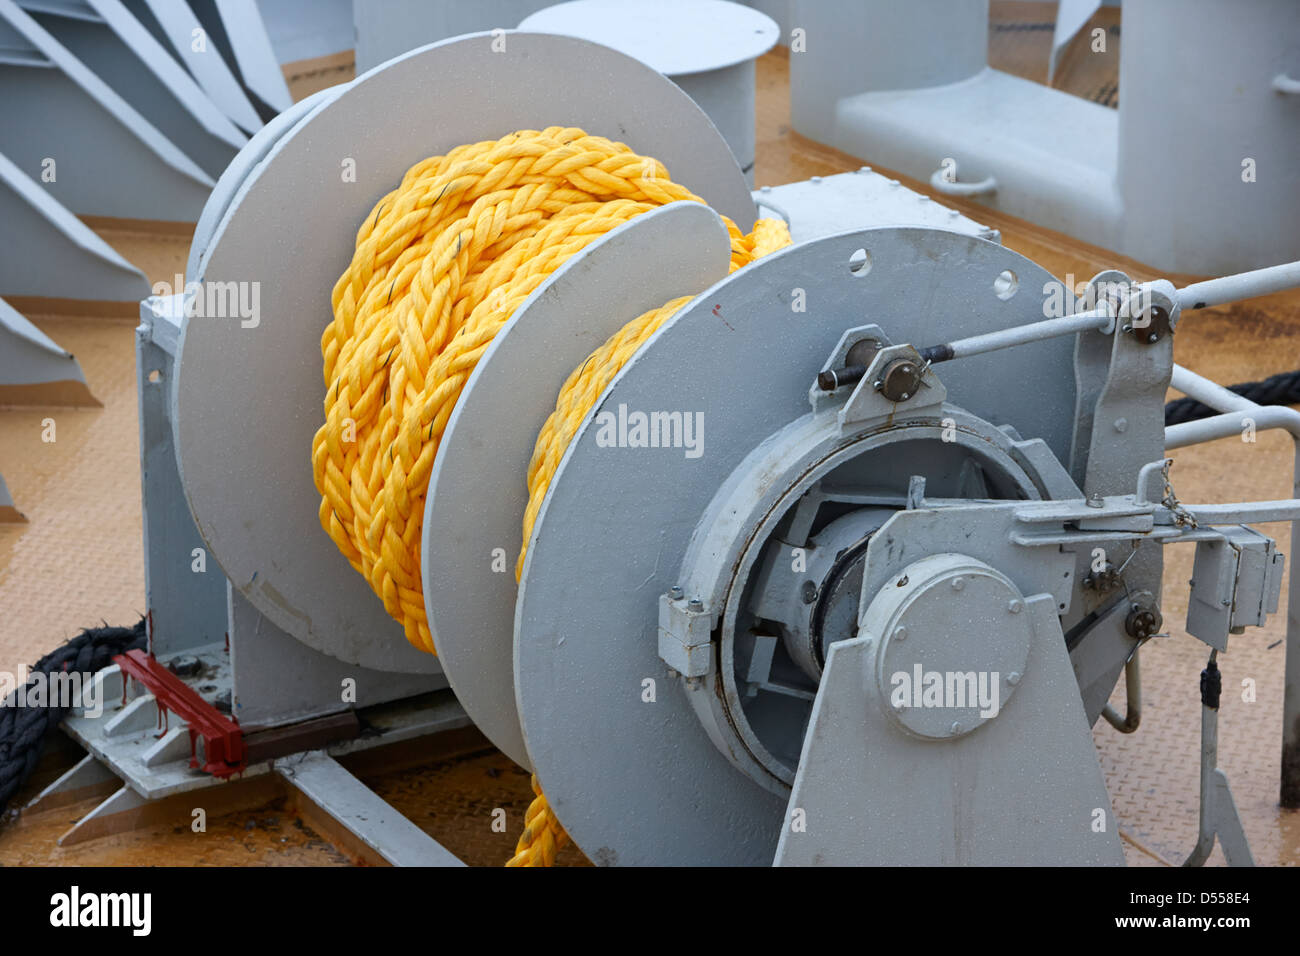 ships tying up ropes on reel on bow of ship - Stock Image